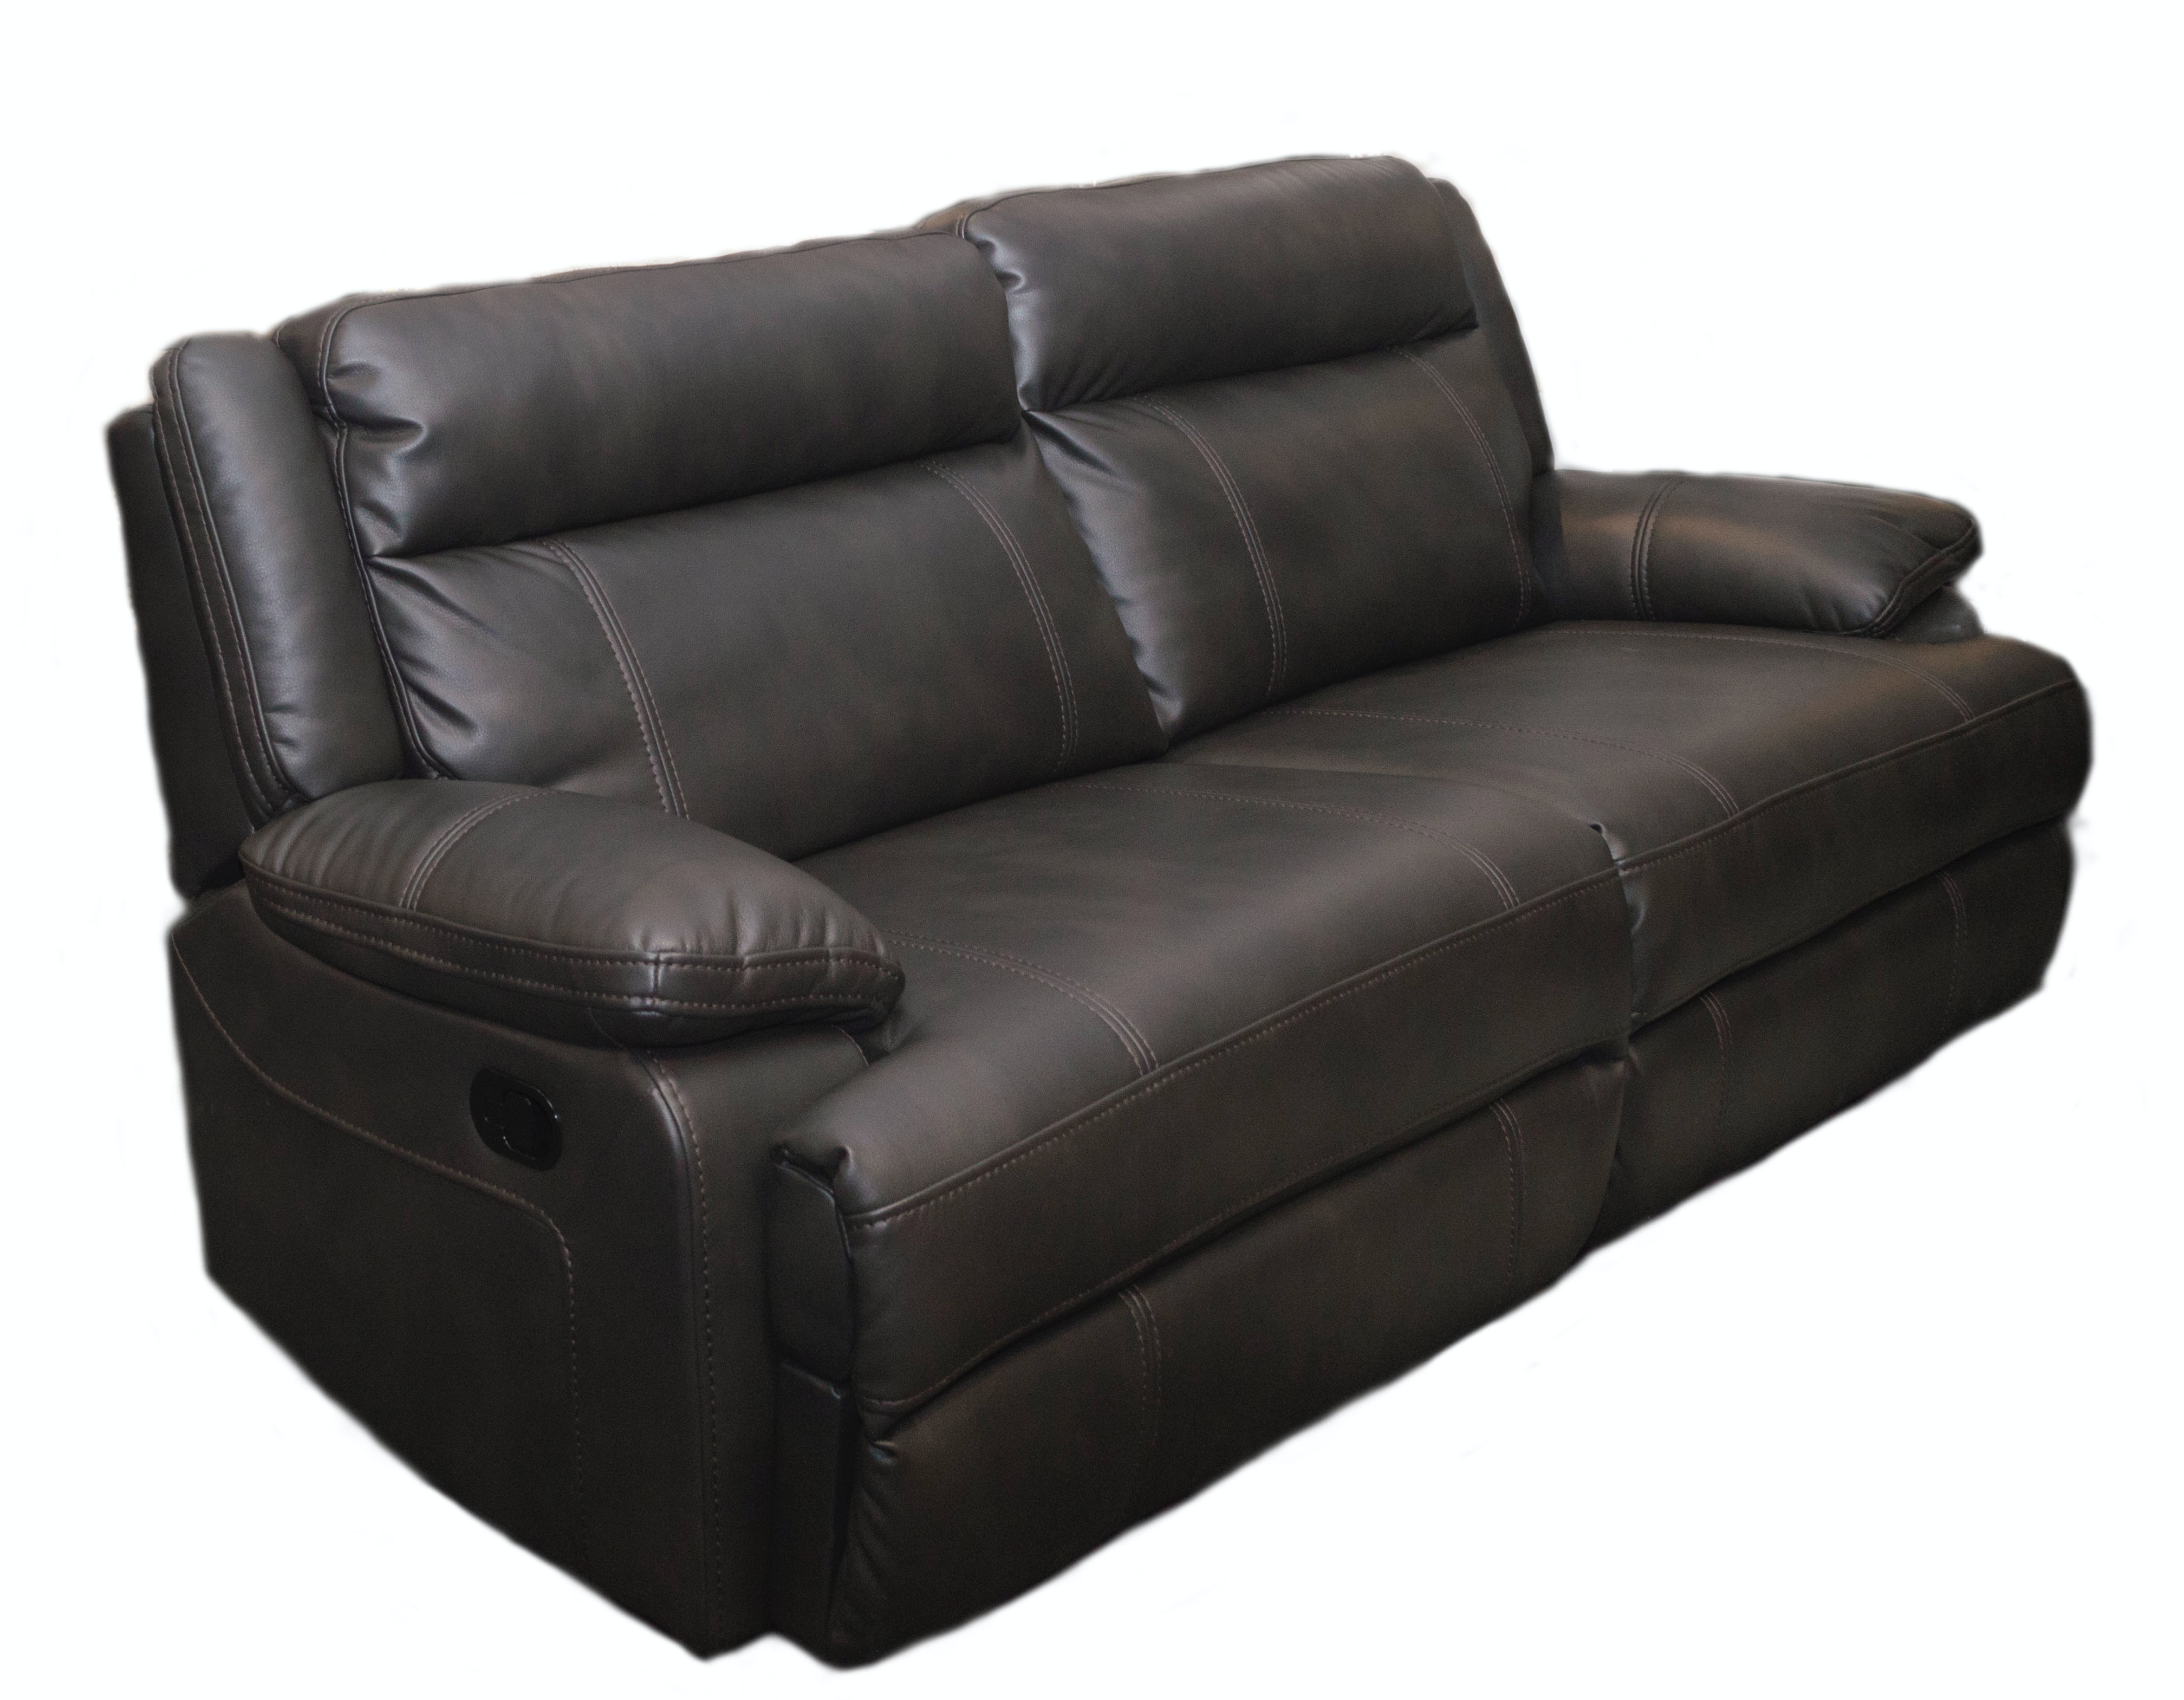 lane home furnishings leather sofa and loveseat from the bowden collection king hickory warranty living room sofas sims furniture ltd red deer ab km 023b 3 5 2a x reclining